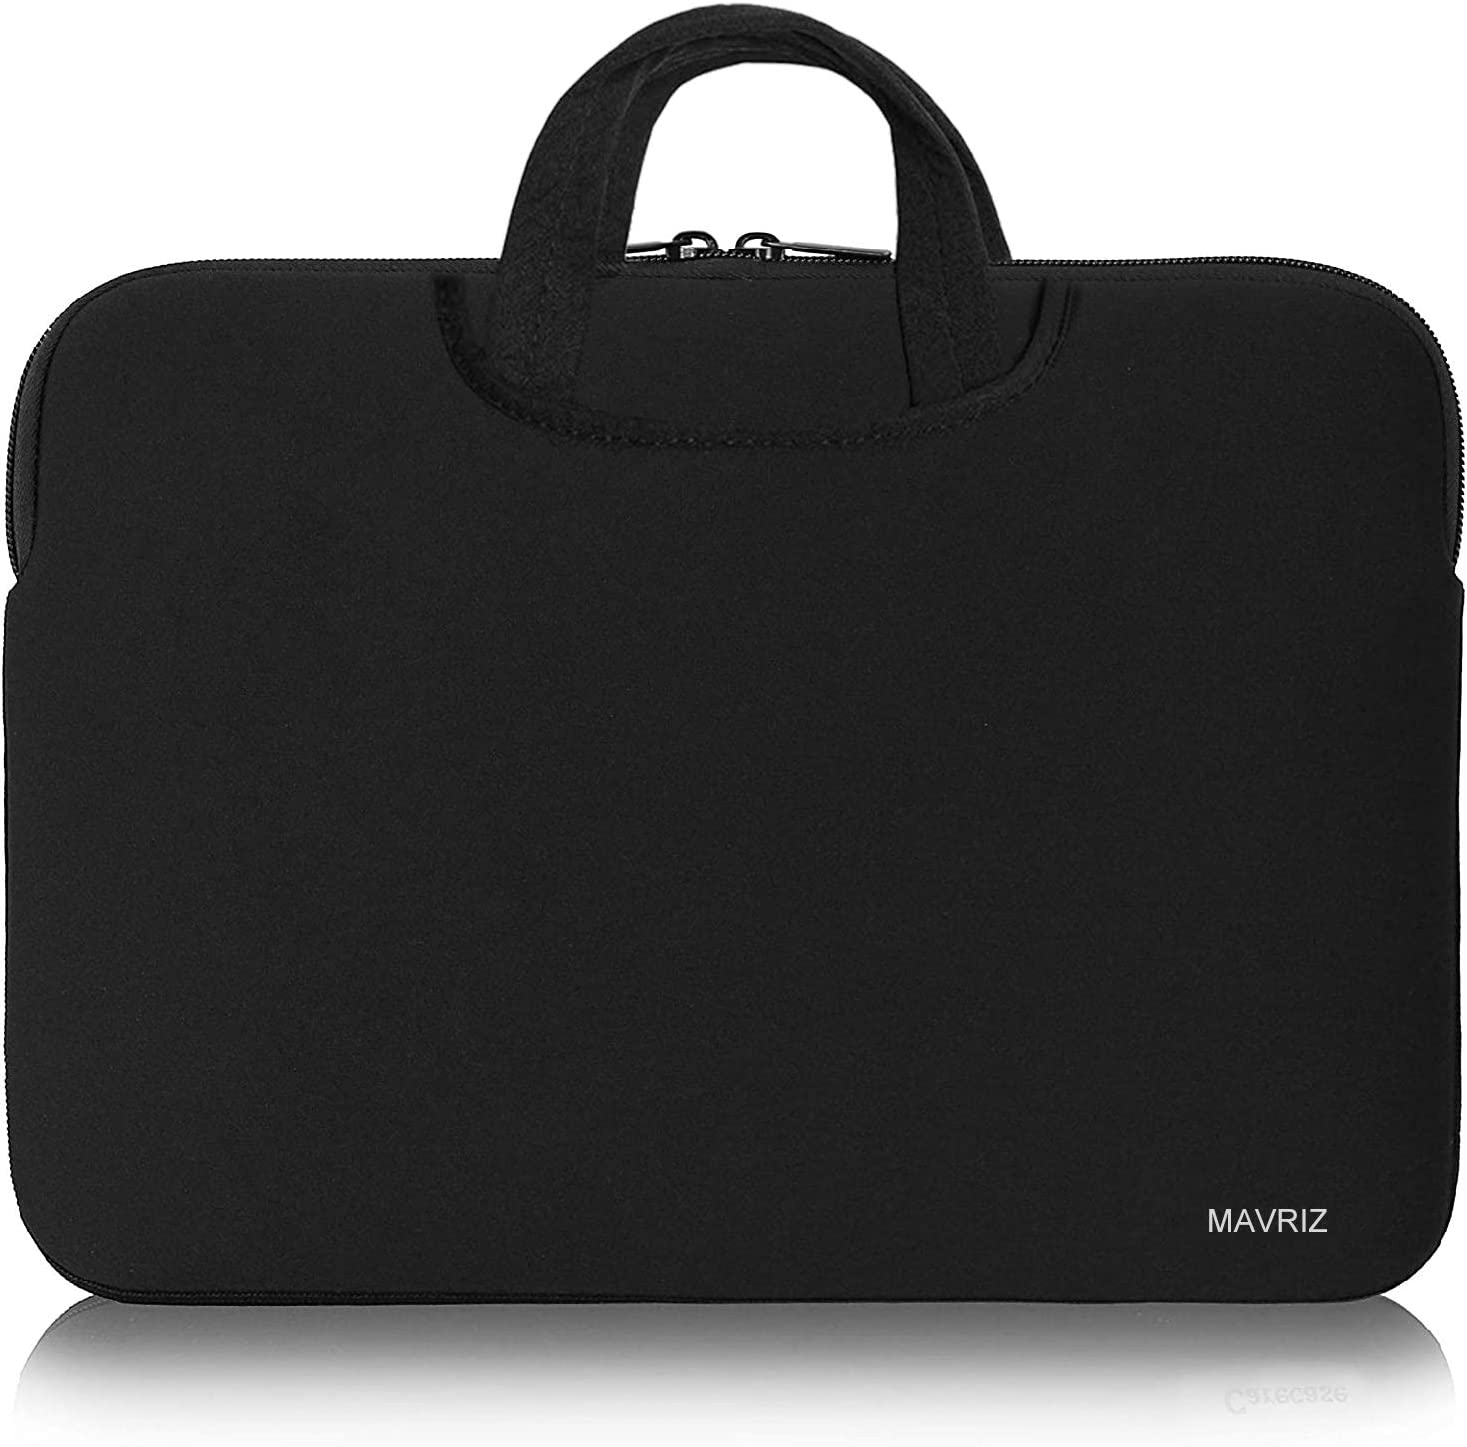 Laptop Sleeve Bag 15.6 Inch, Slim Briefcase Handle Bag with Two Extra Pockets,Notebook Computer Protective Case Cover for MacBook Pro, MacBook Air, Hidden Design Carrying Handles (Black)